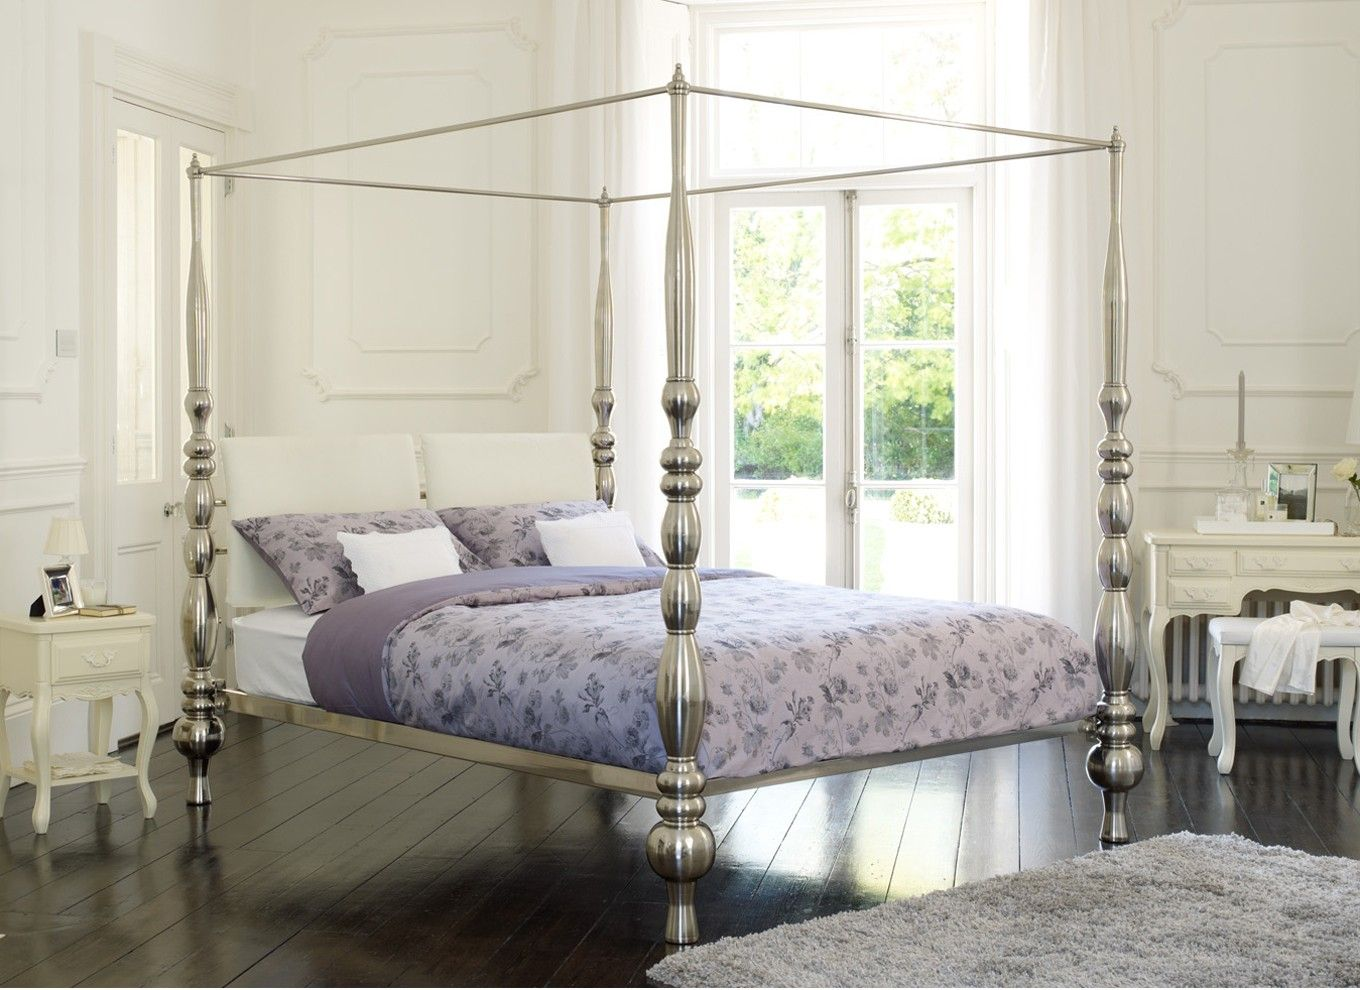 Amazing four poster bedstead in brushed metal - pretty as is or ...